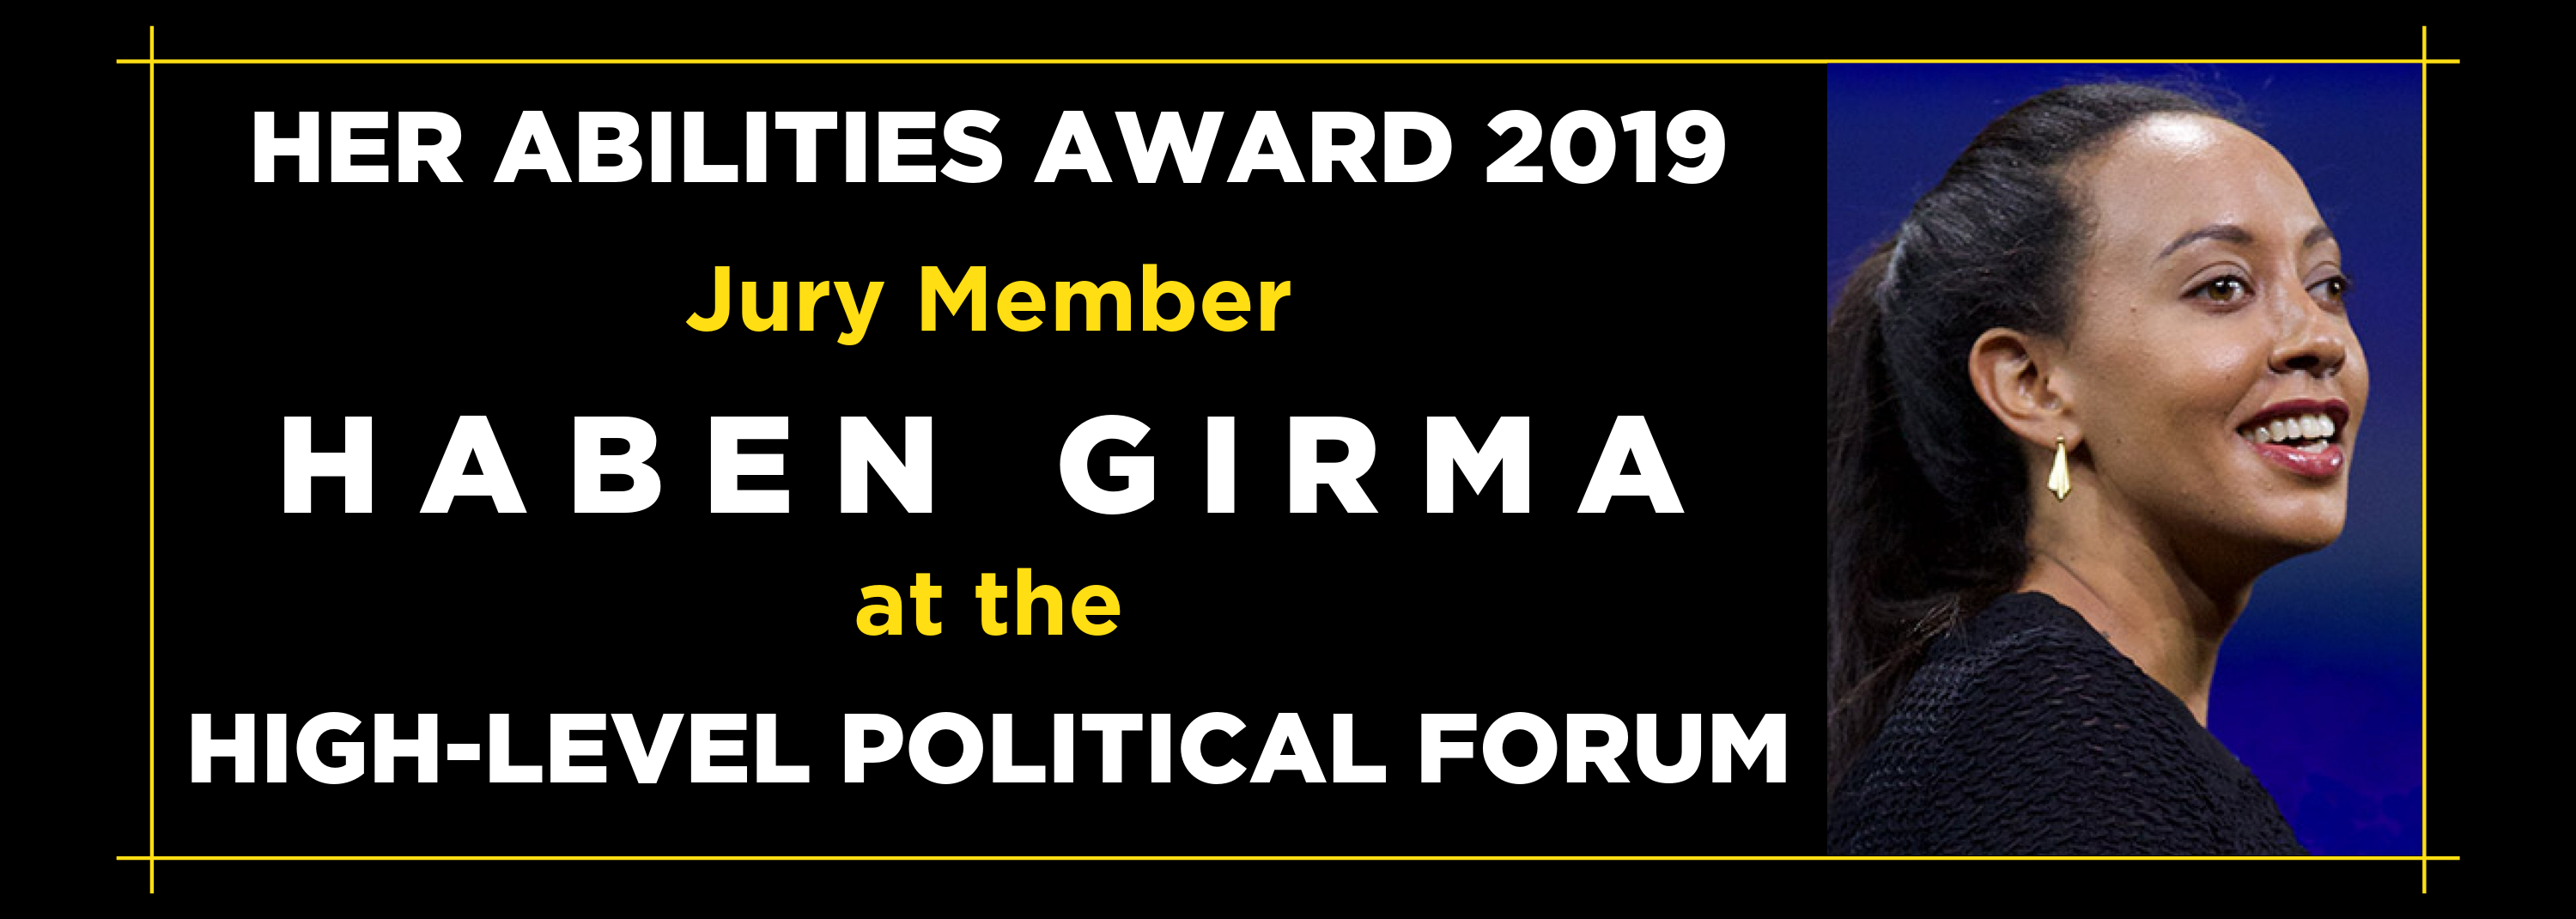 Her Abilities Award 2019 Jury member Haben Girma at the High- Level Political Forum